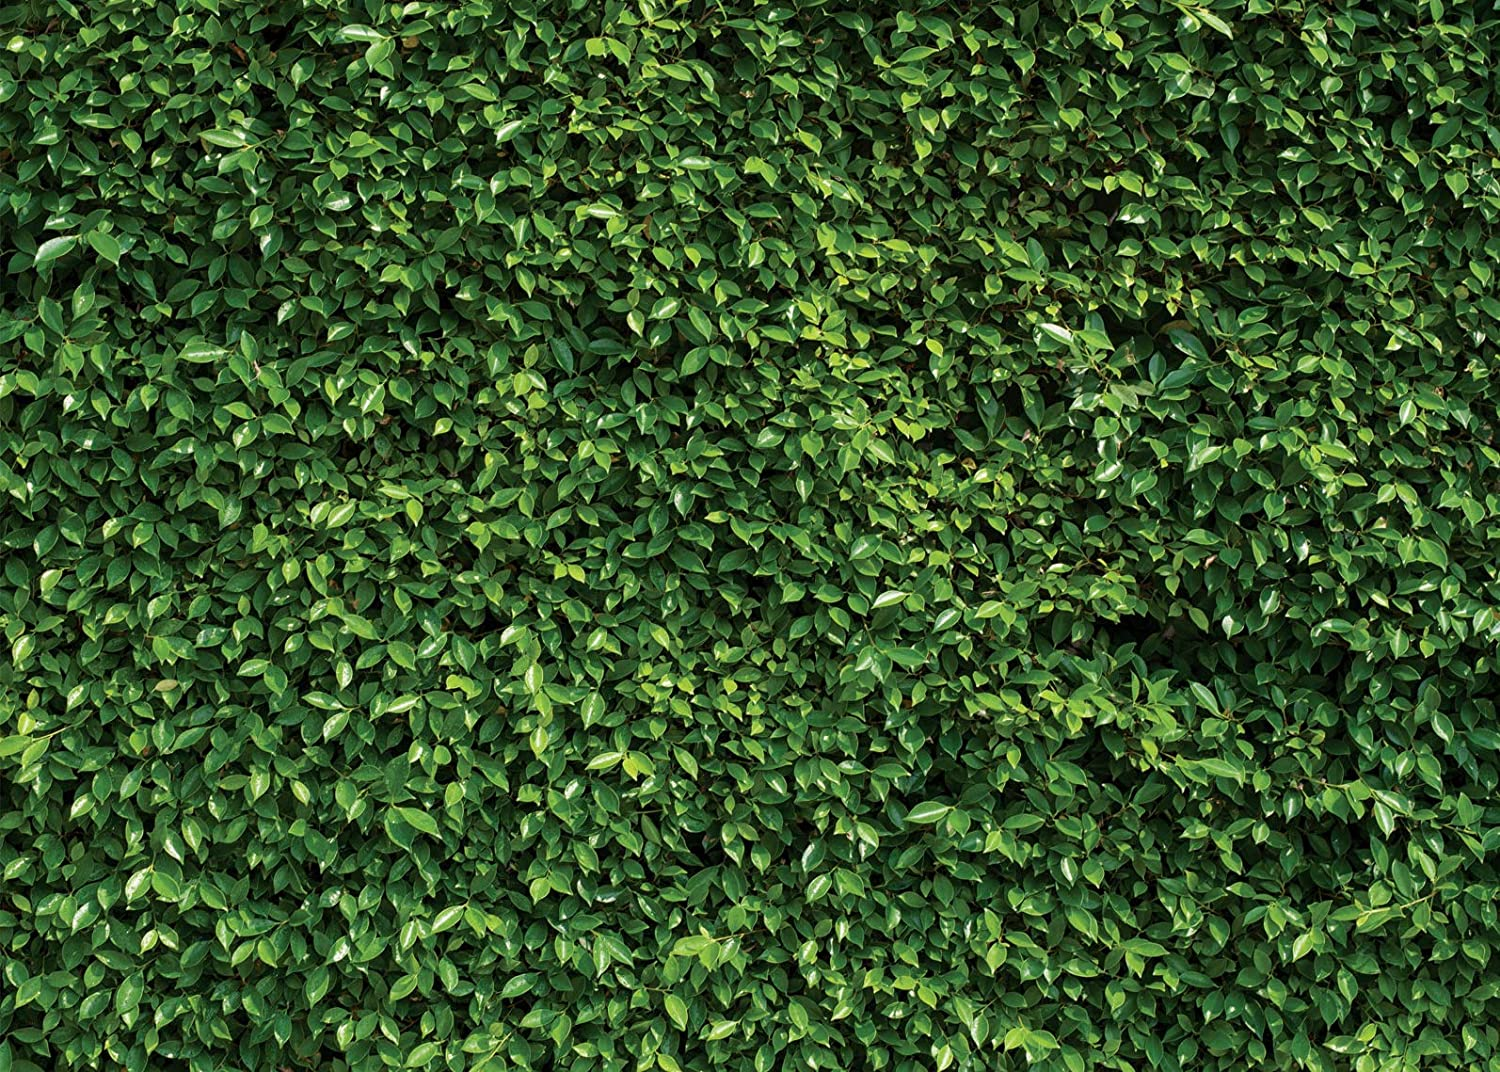 SJOLOON 7X5ft Green Leaves Backdrop Grass Backdrop Natural Green Lawn Party Photography Backdrop Birthday Newborn Baby Lover Wedding Photo Studio Props 10923